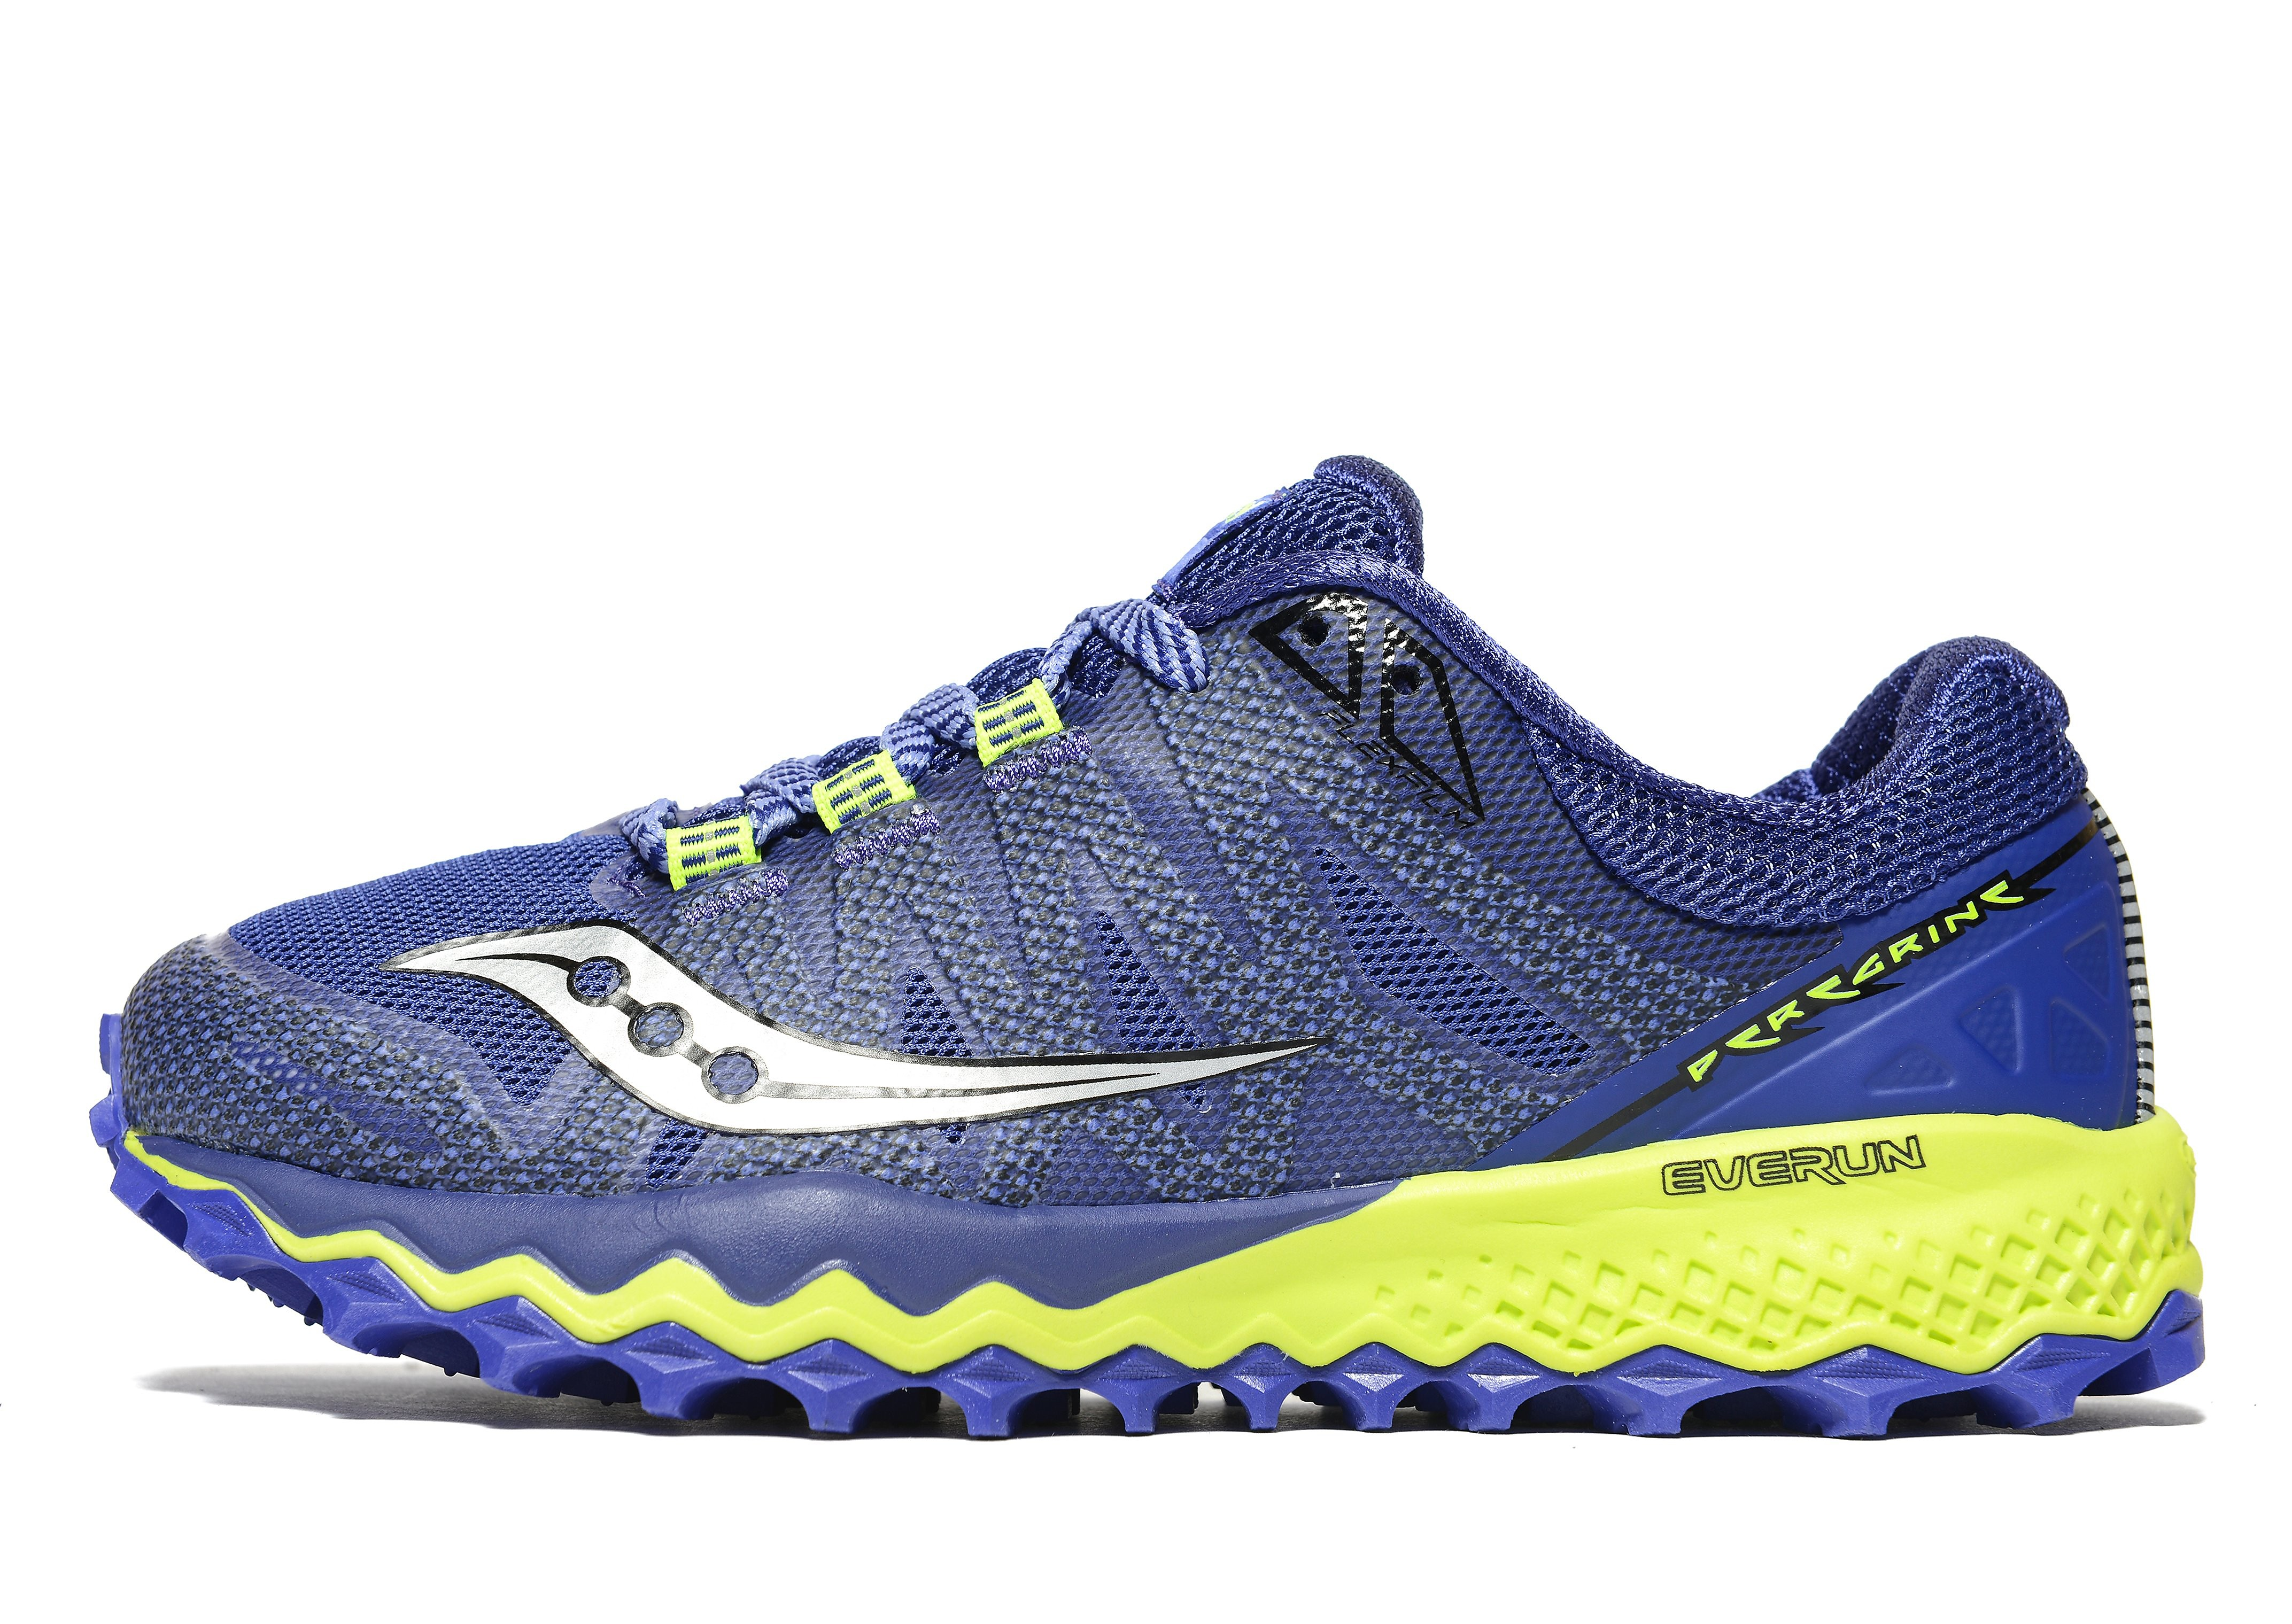 Saucony Peregrine 7 Trail Running Shoes Women's